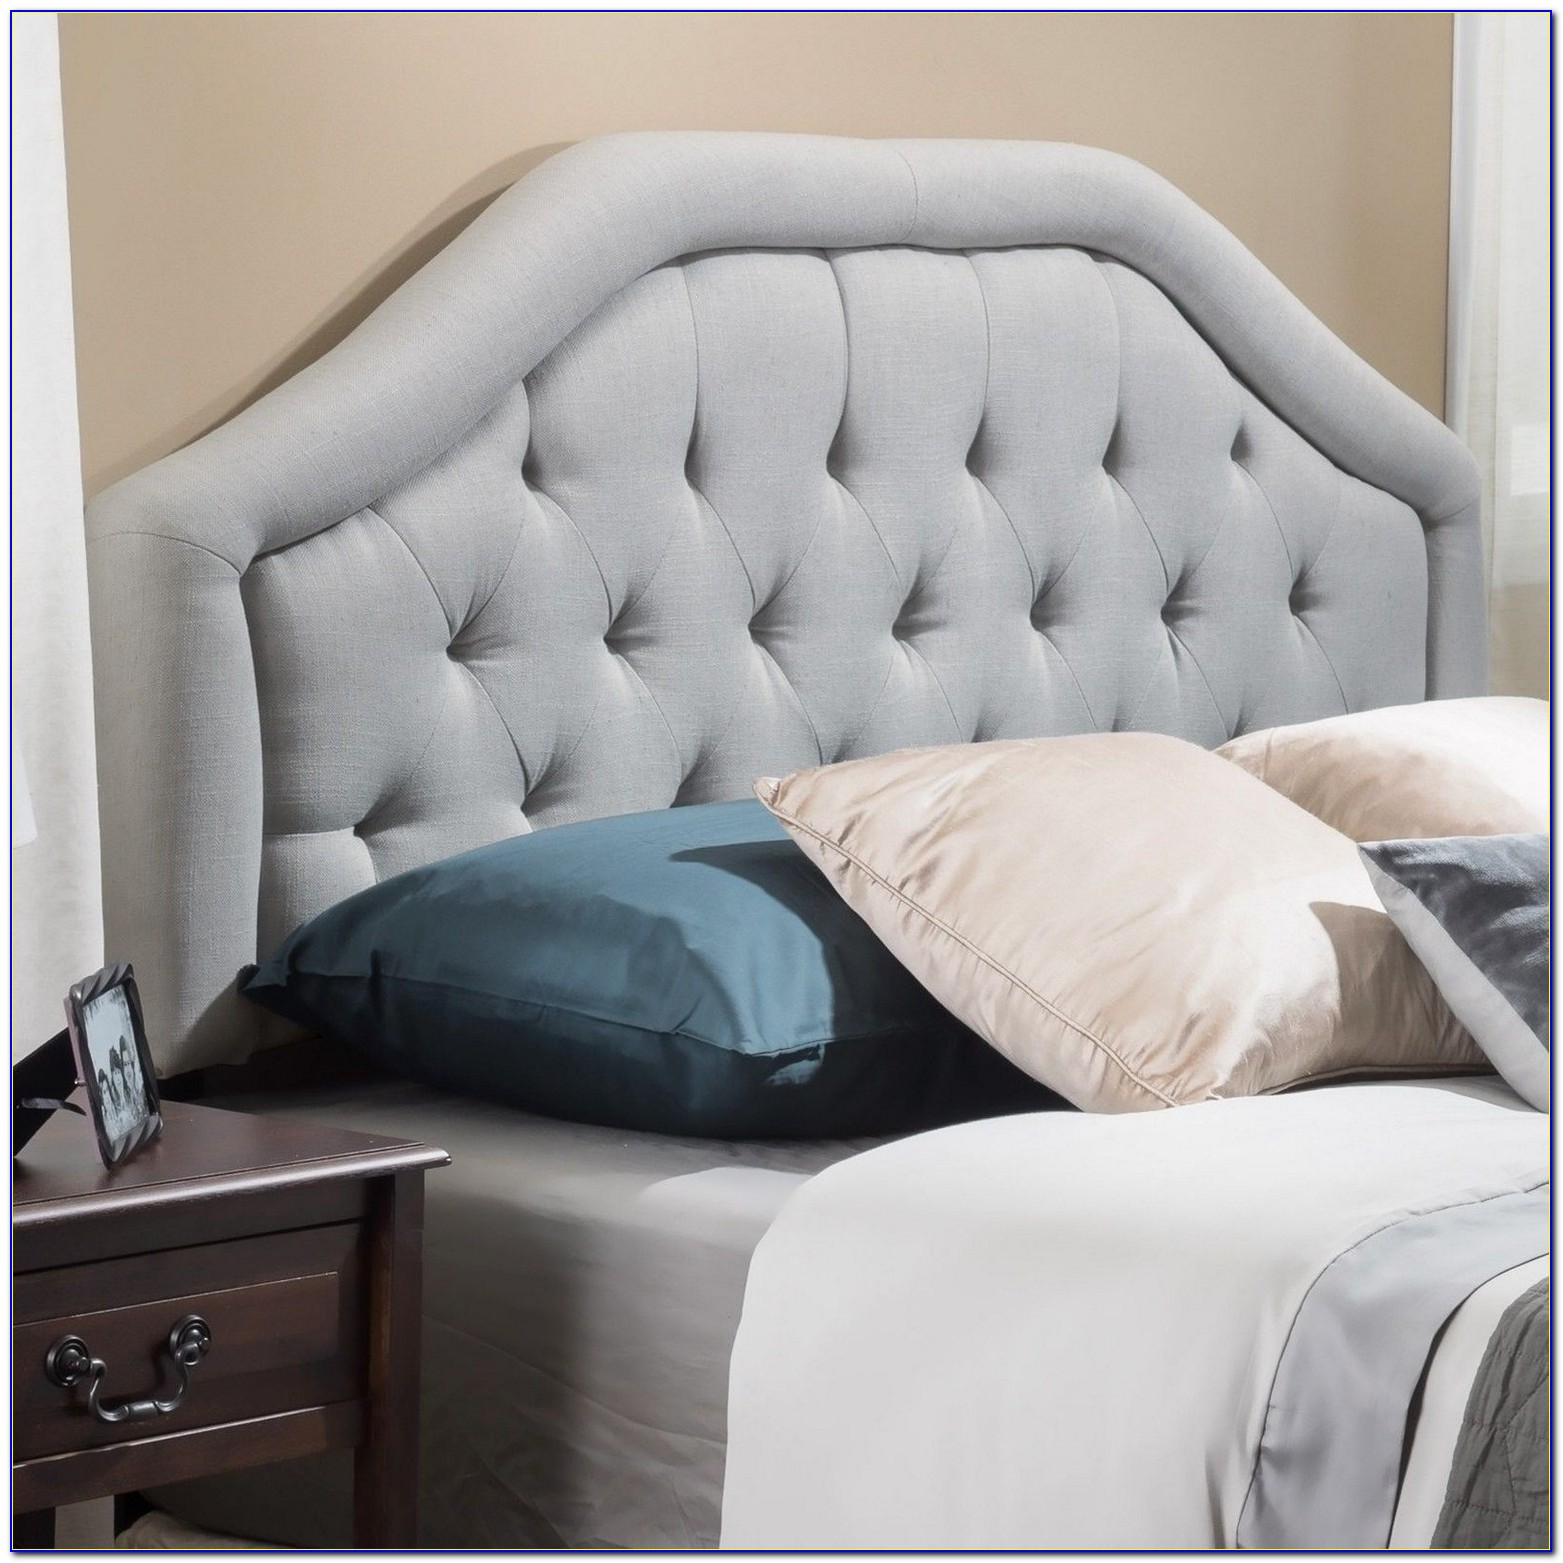 Beds With Large Padded Headboards